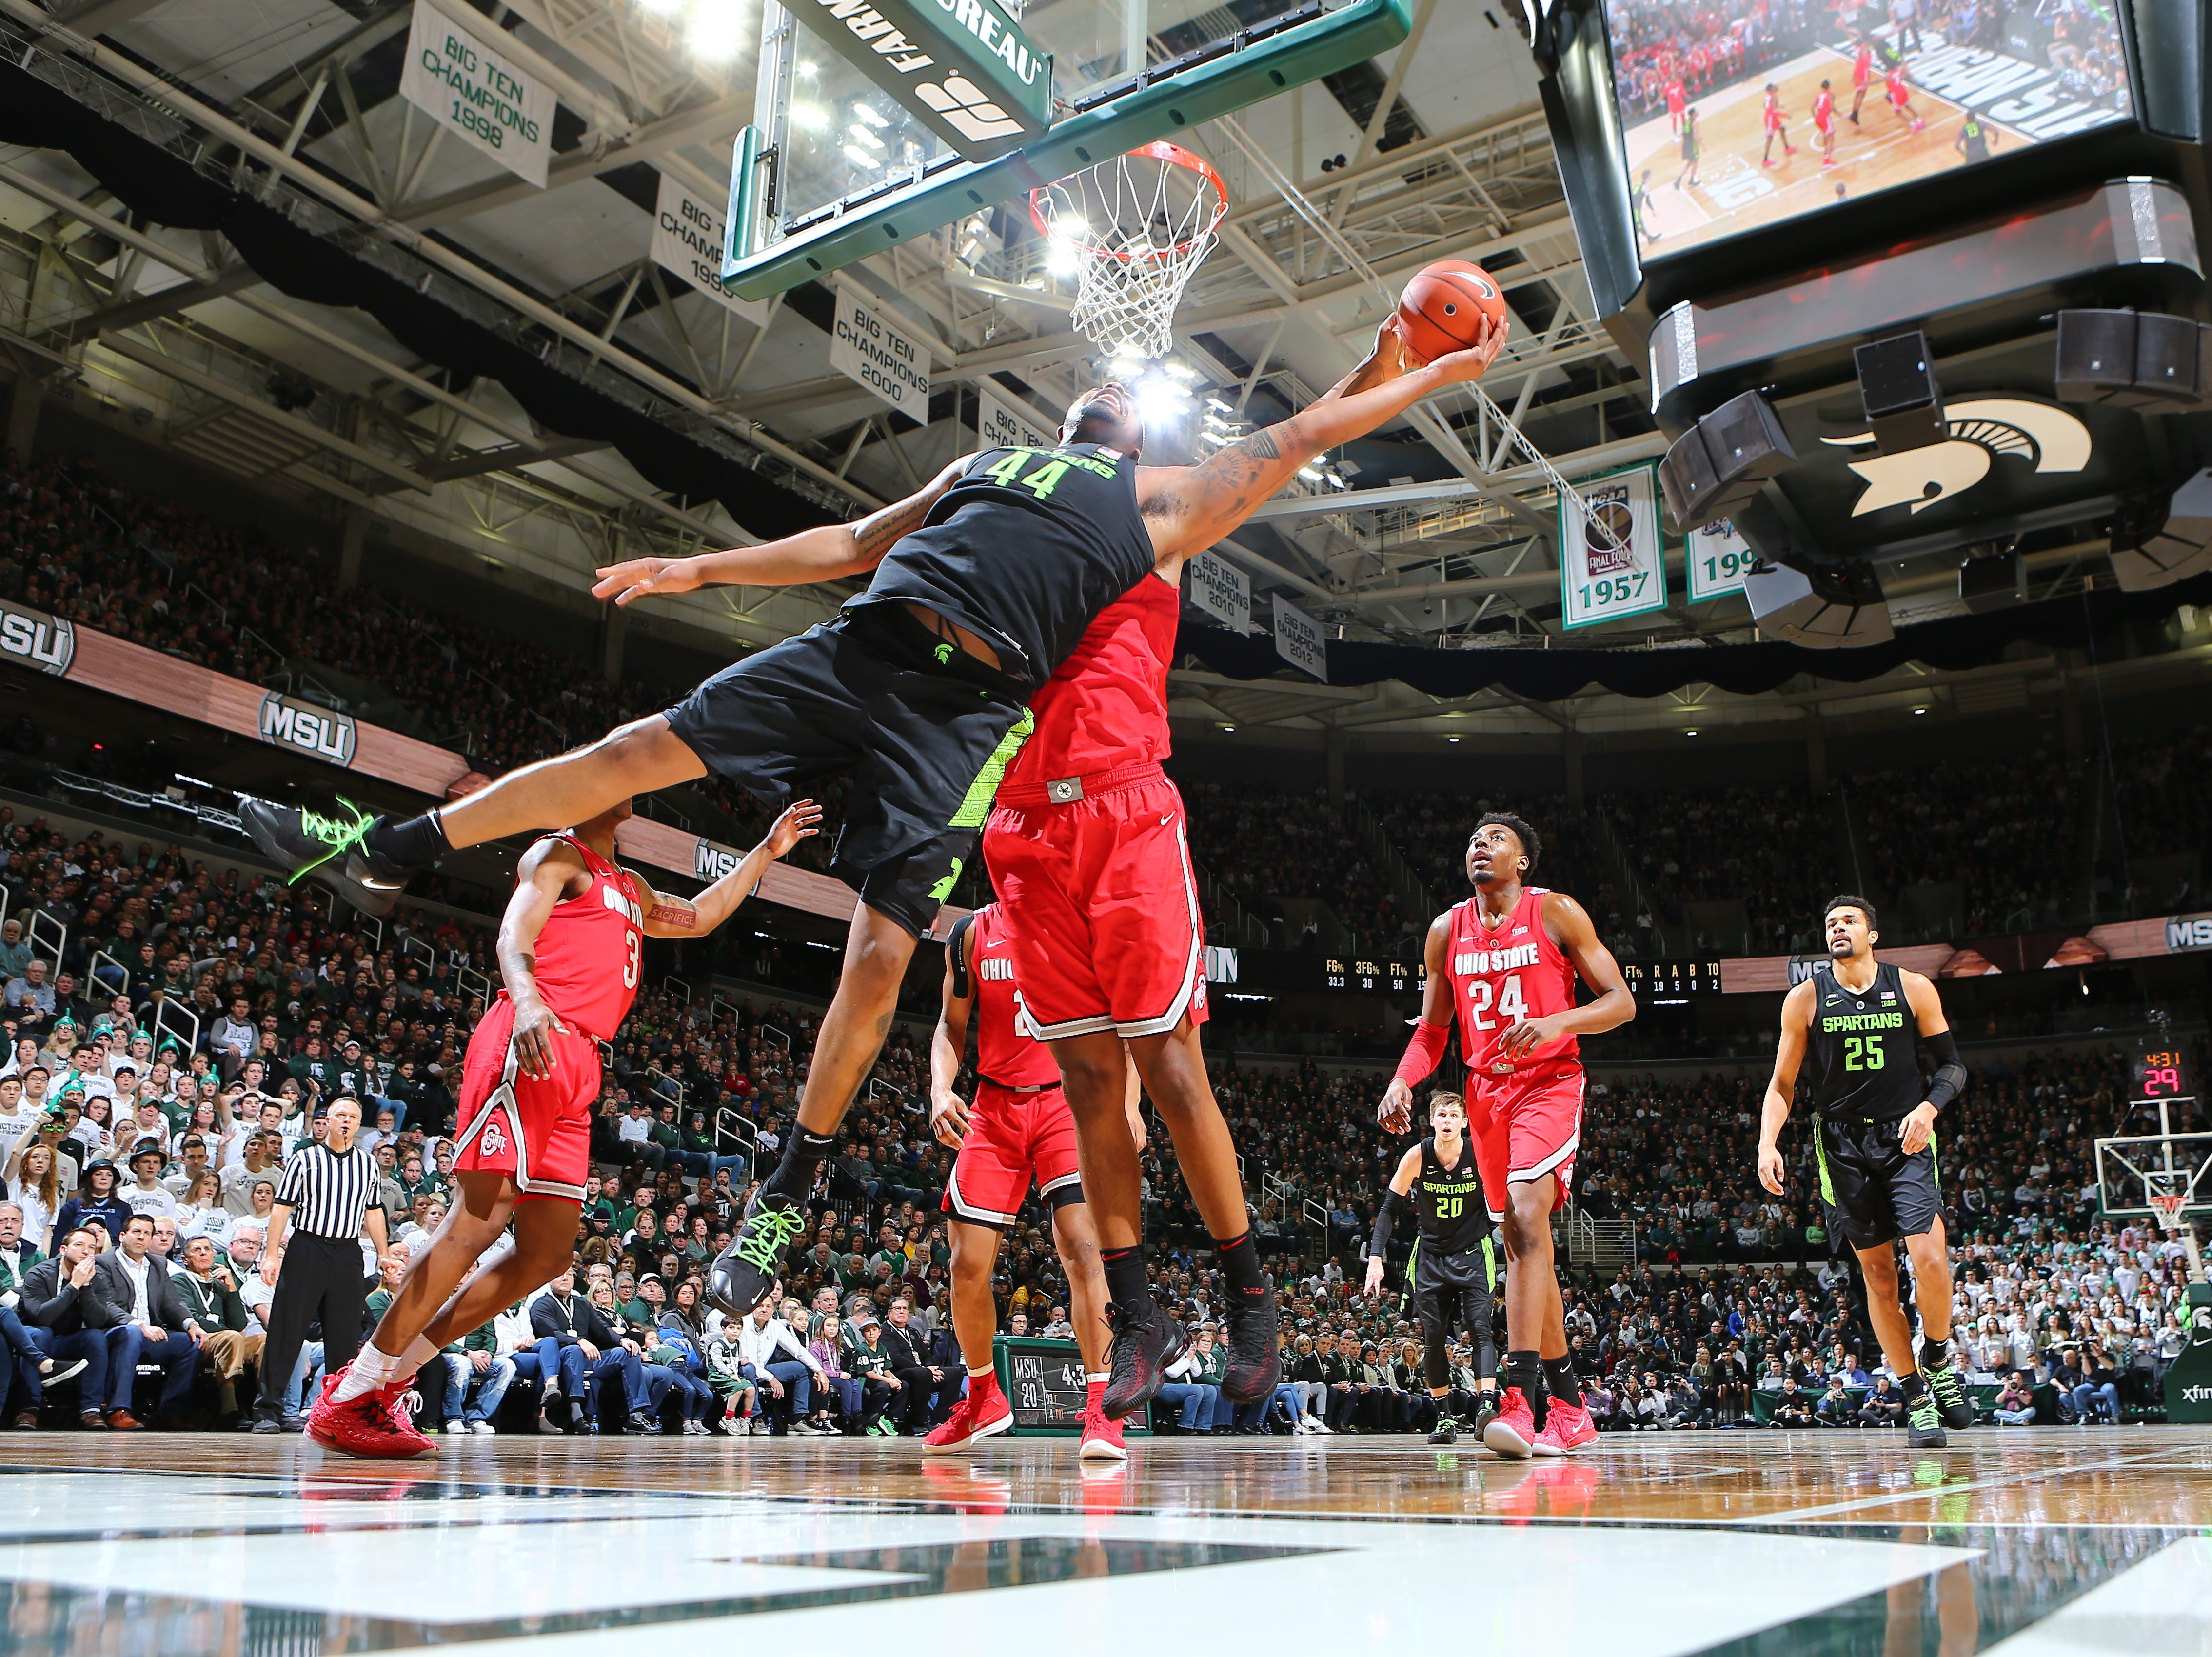 Ohio State's Kaleb Wesson blocks the shot of Michigan State's Nick Ward in the first half of MSU's 62-44 win Sunday, Feb. 17, 2019, in East Lansing.